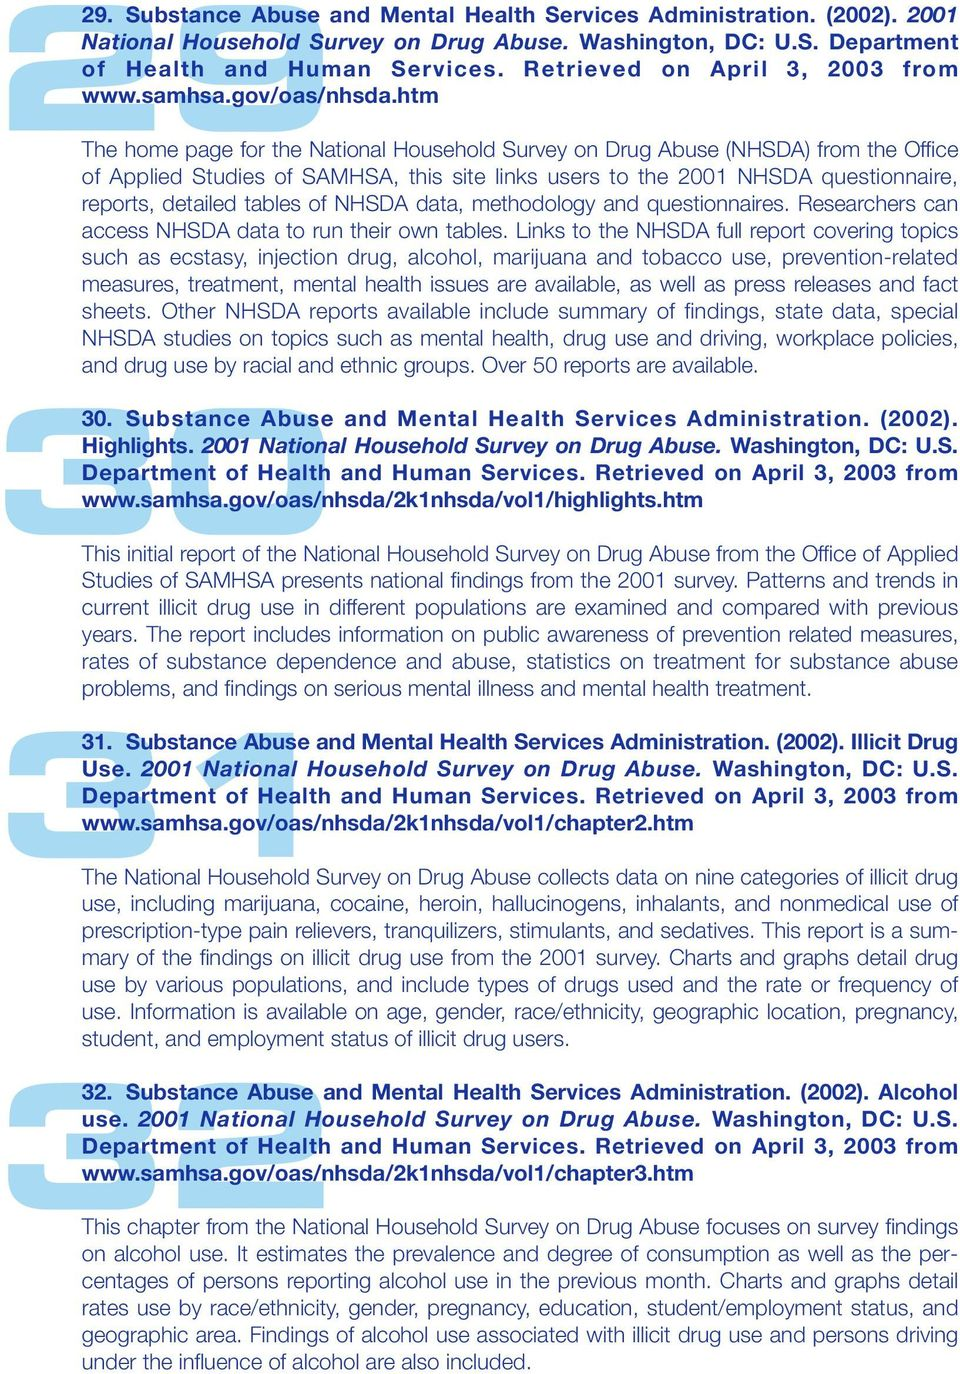 htm The home page for the National Household Survey on Drug Abuse (NHSDA) from the Office of Applied Studies of SAMHSA, this site links users to the 2001 NHSDA questionnaire, reports, detailed tables